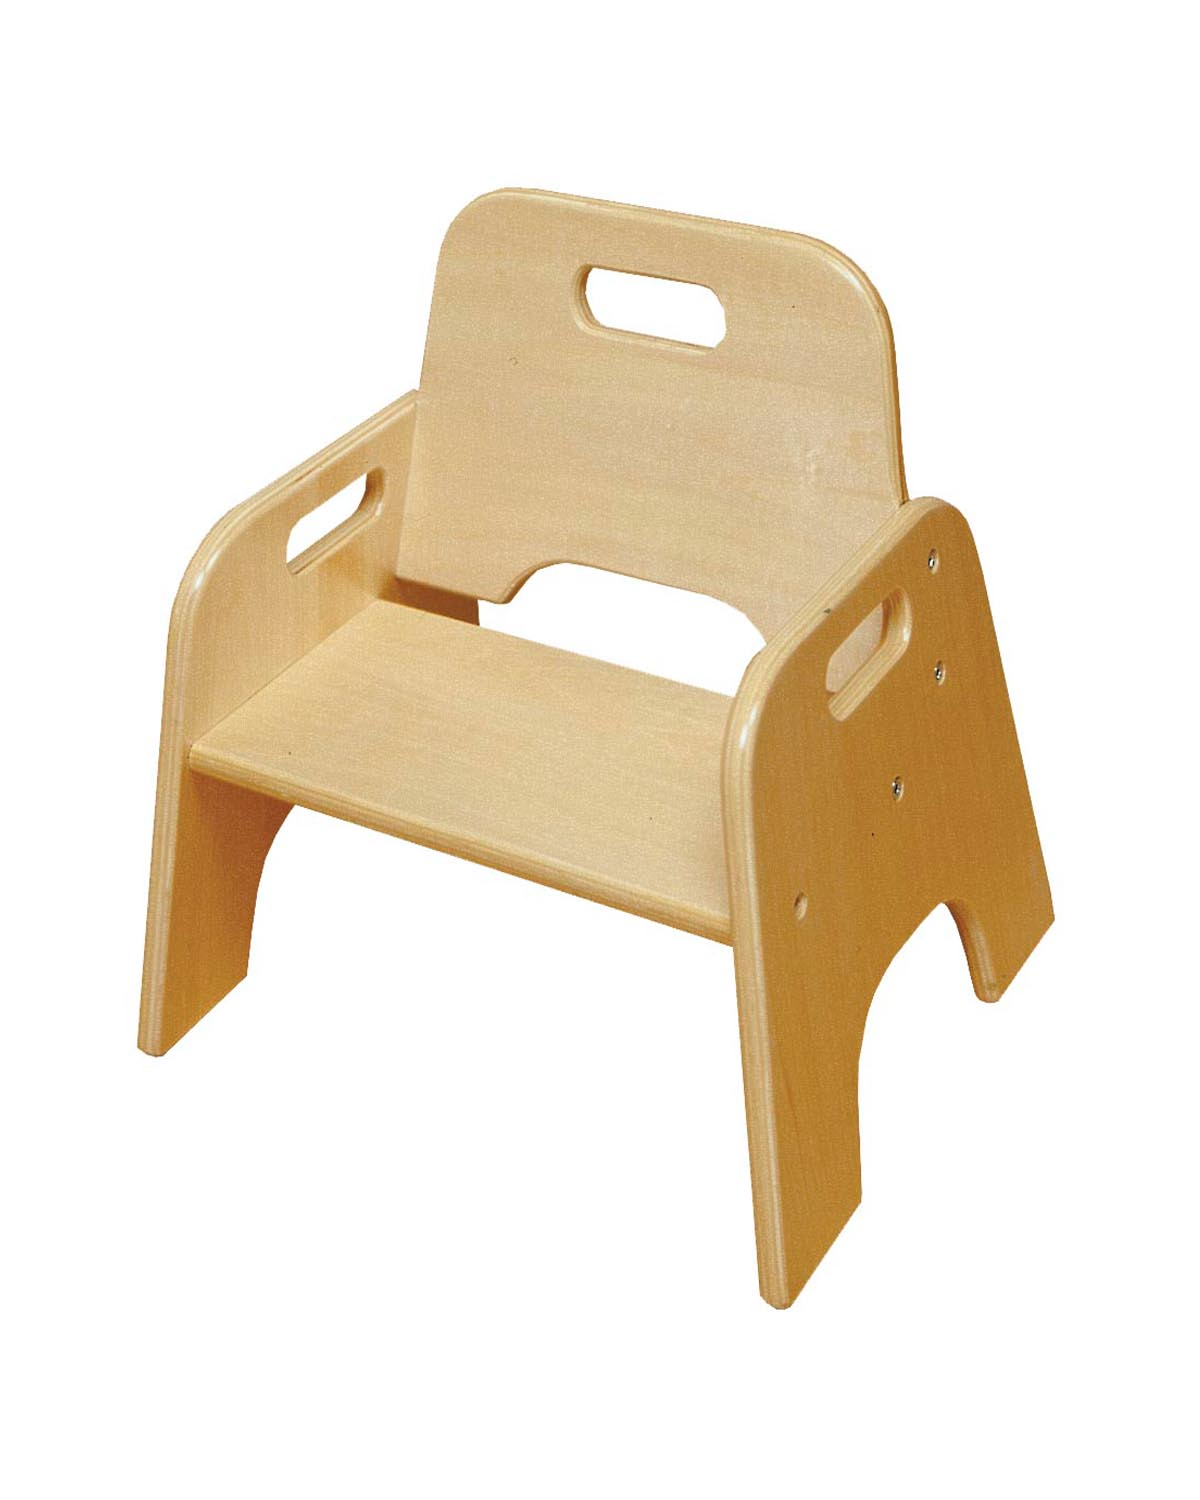 Toddler Chairs Toddler Chairs Images Reverse Search